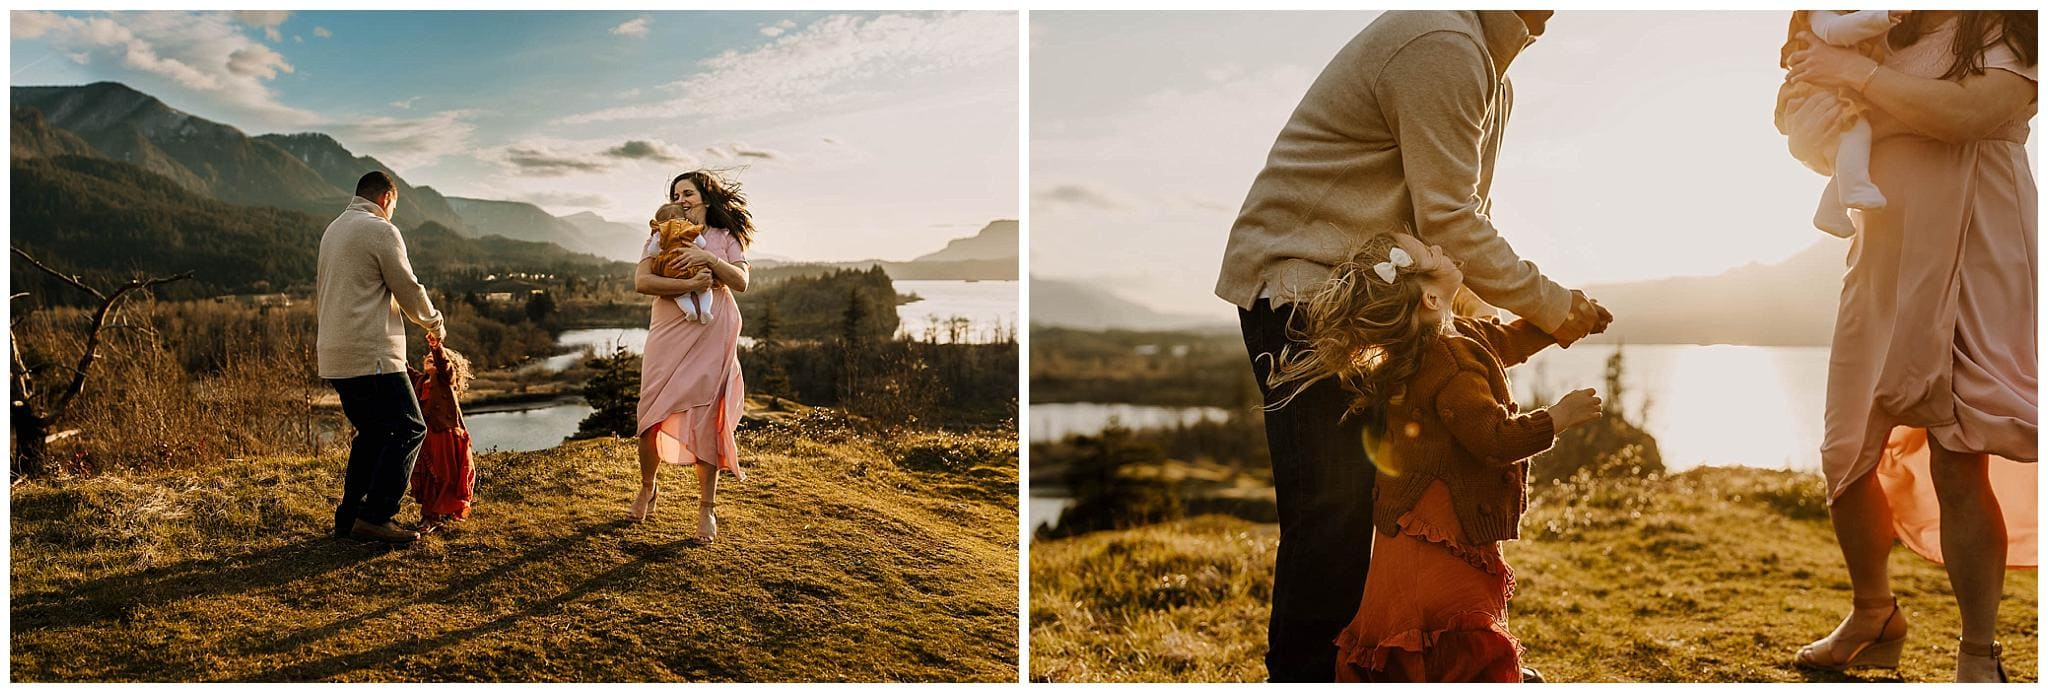 family dancing in the sunset during adventure family photos